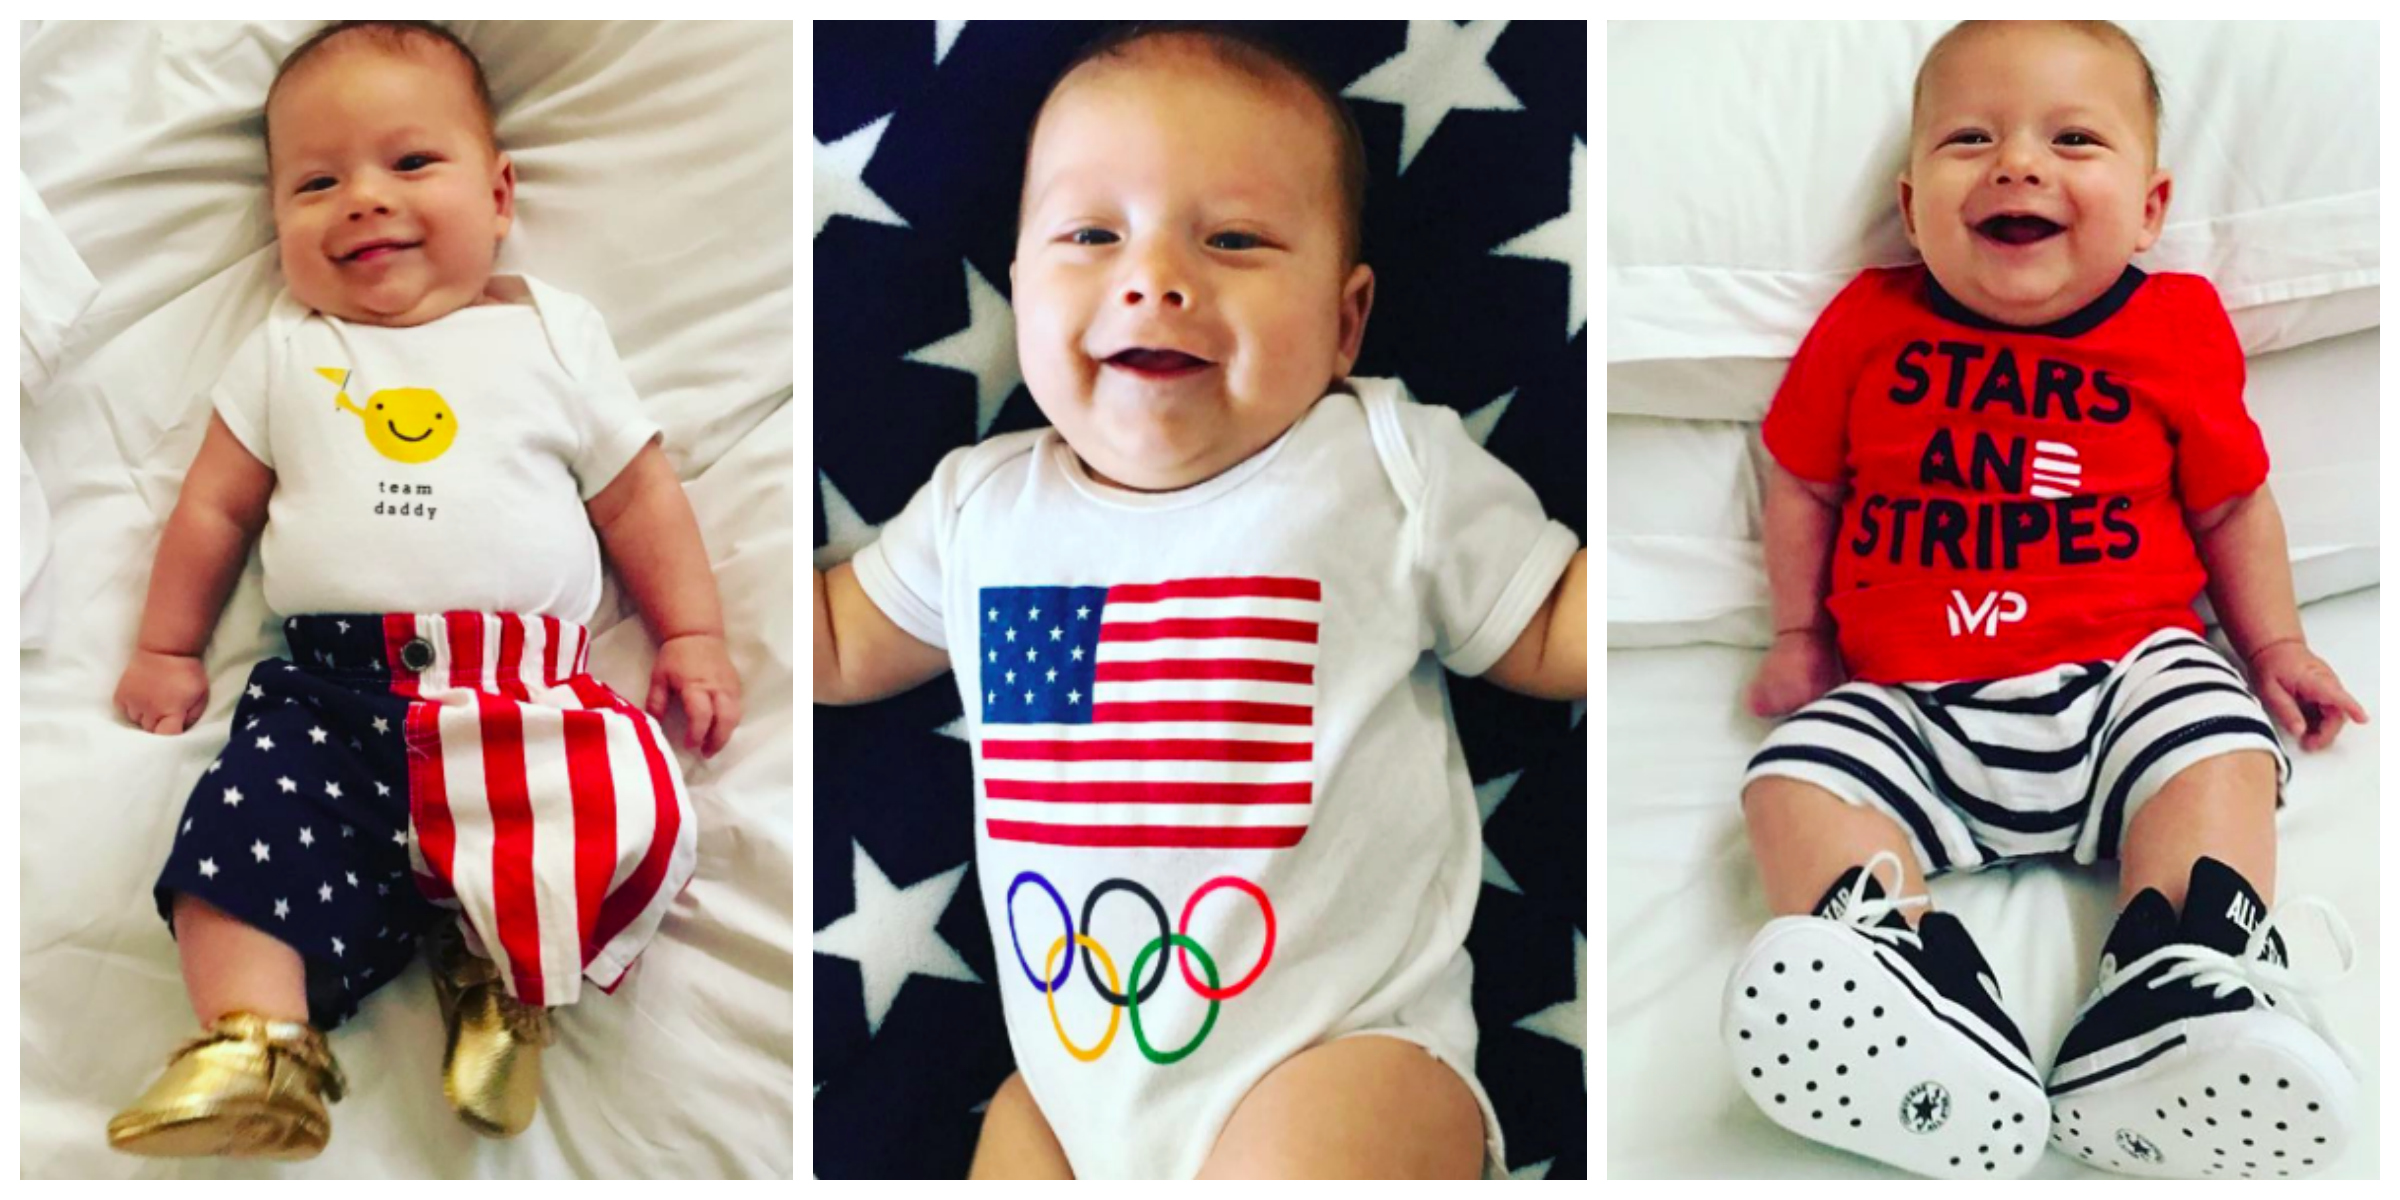 10 Times Boomer Phelps Was the Cutest Little Guy at the Olympics